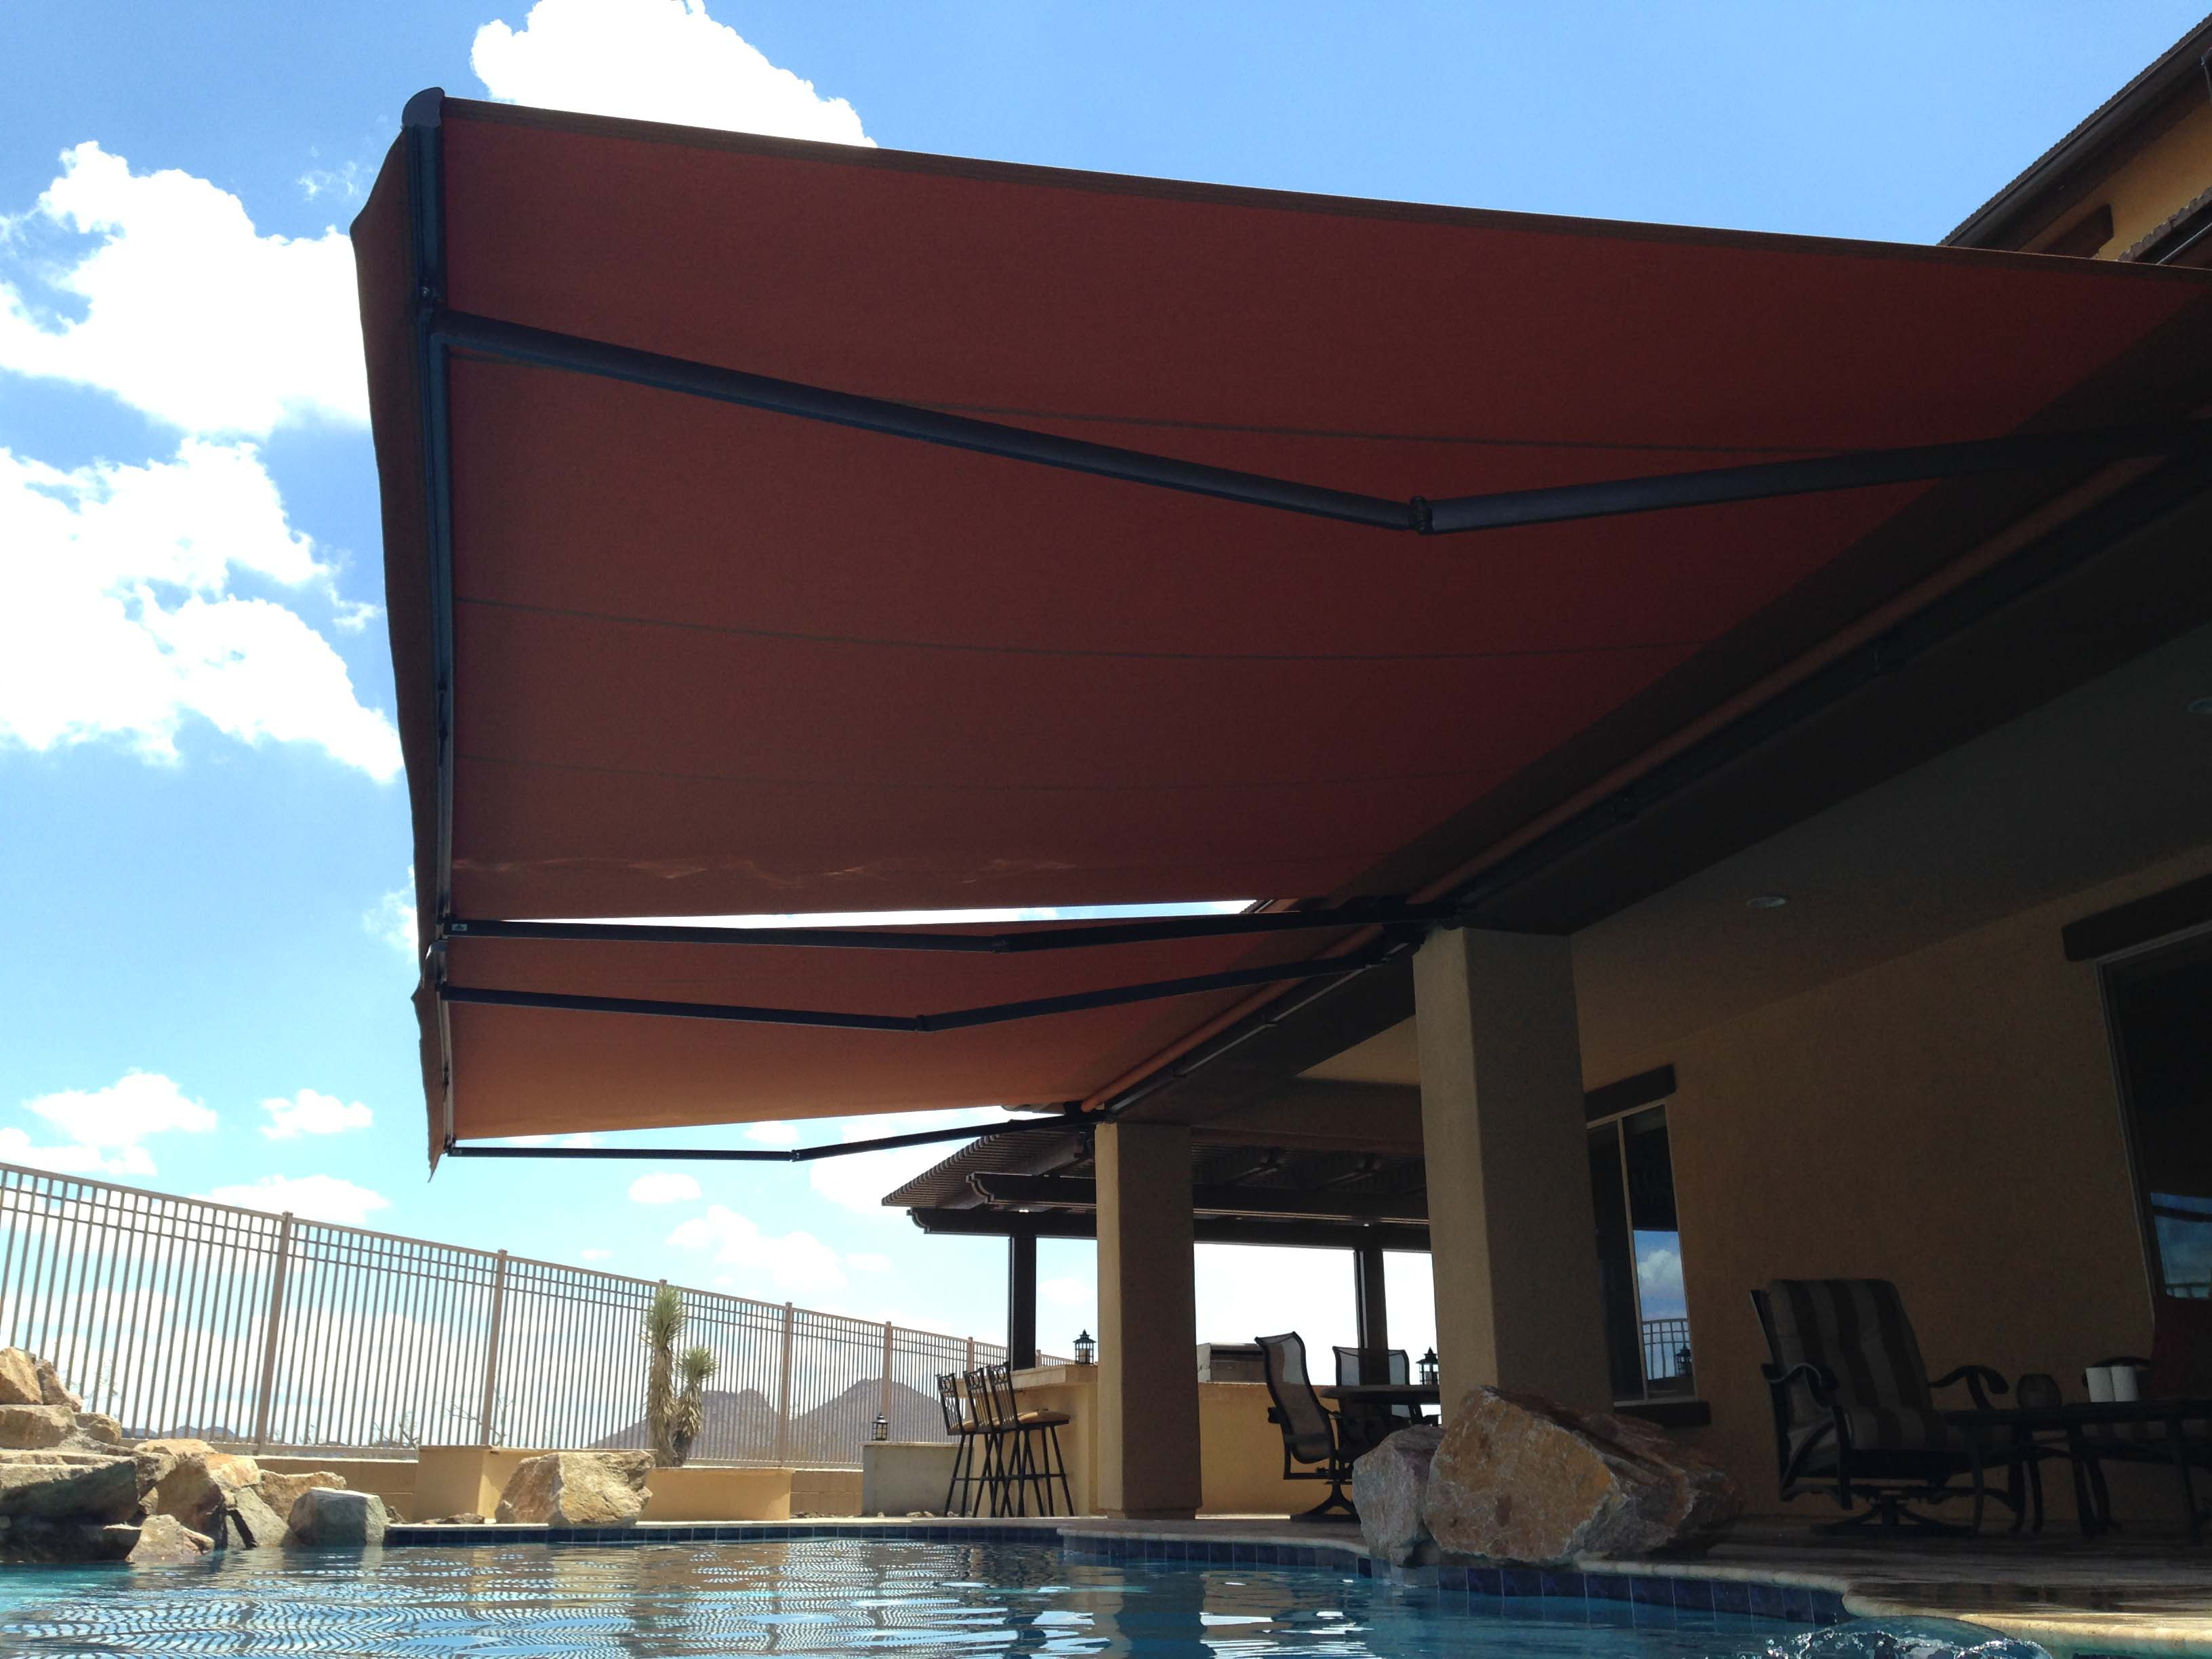 Retractable Awnings Phoenix Aaa Sun Control